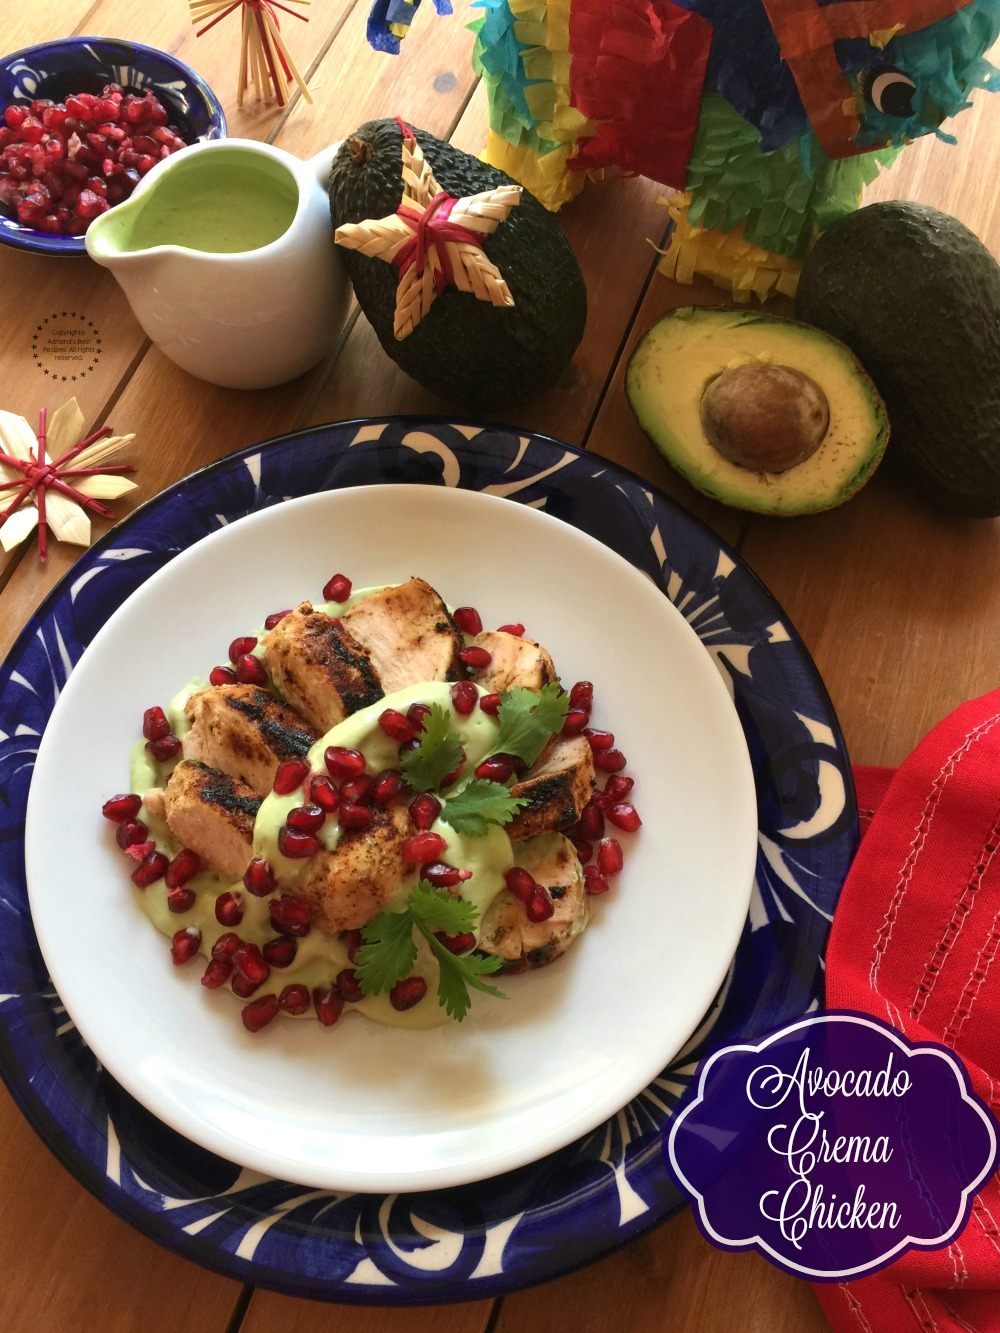 Avocado Crema Chicken with Pomegranate Jewels for our upcoming posada party